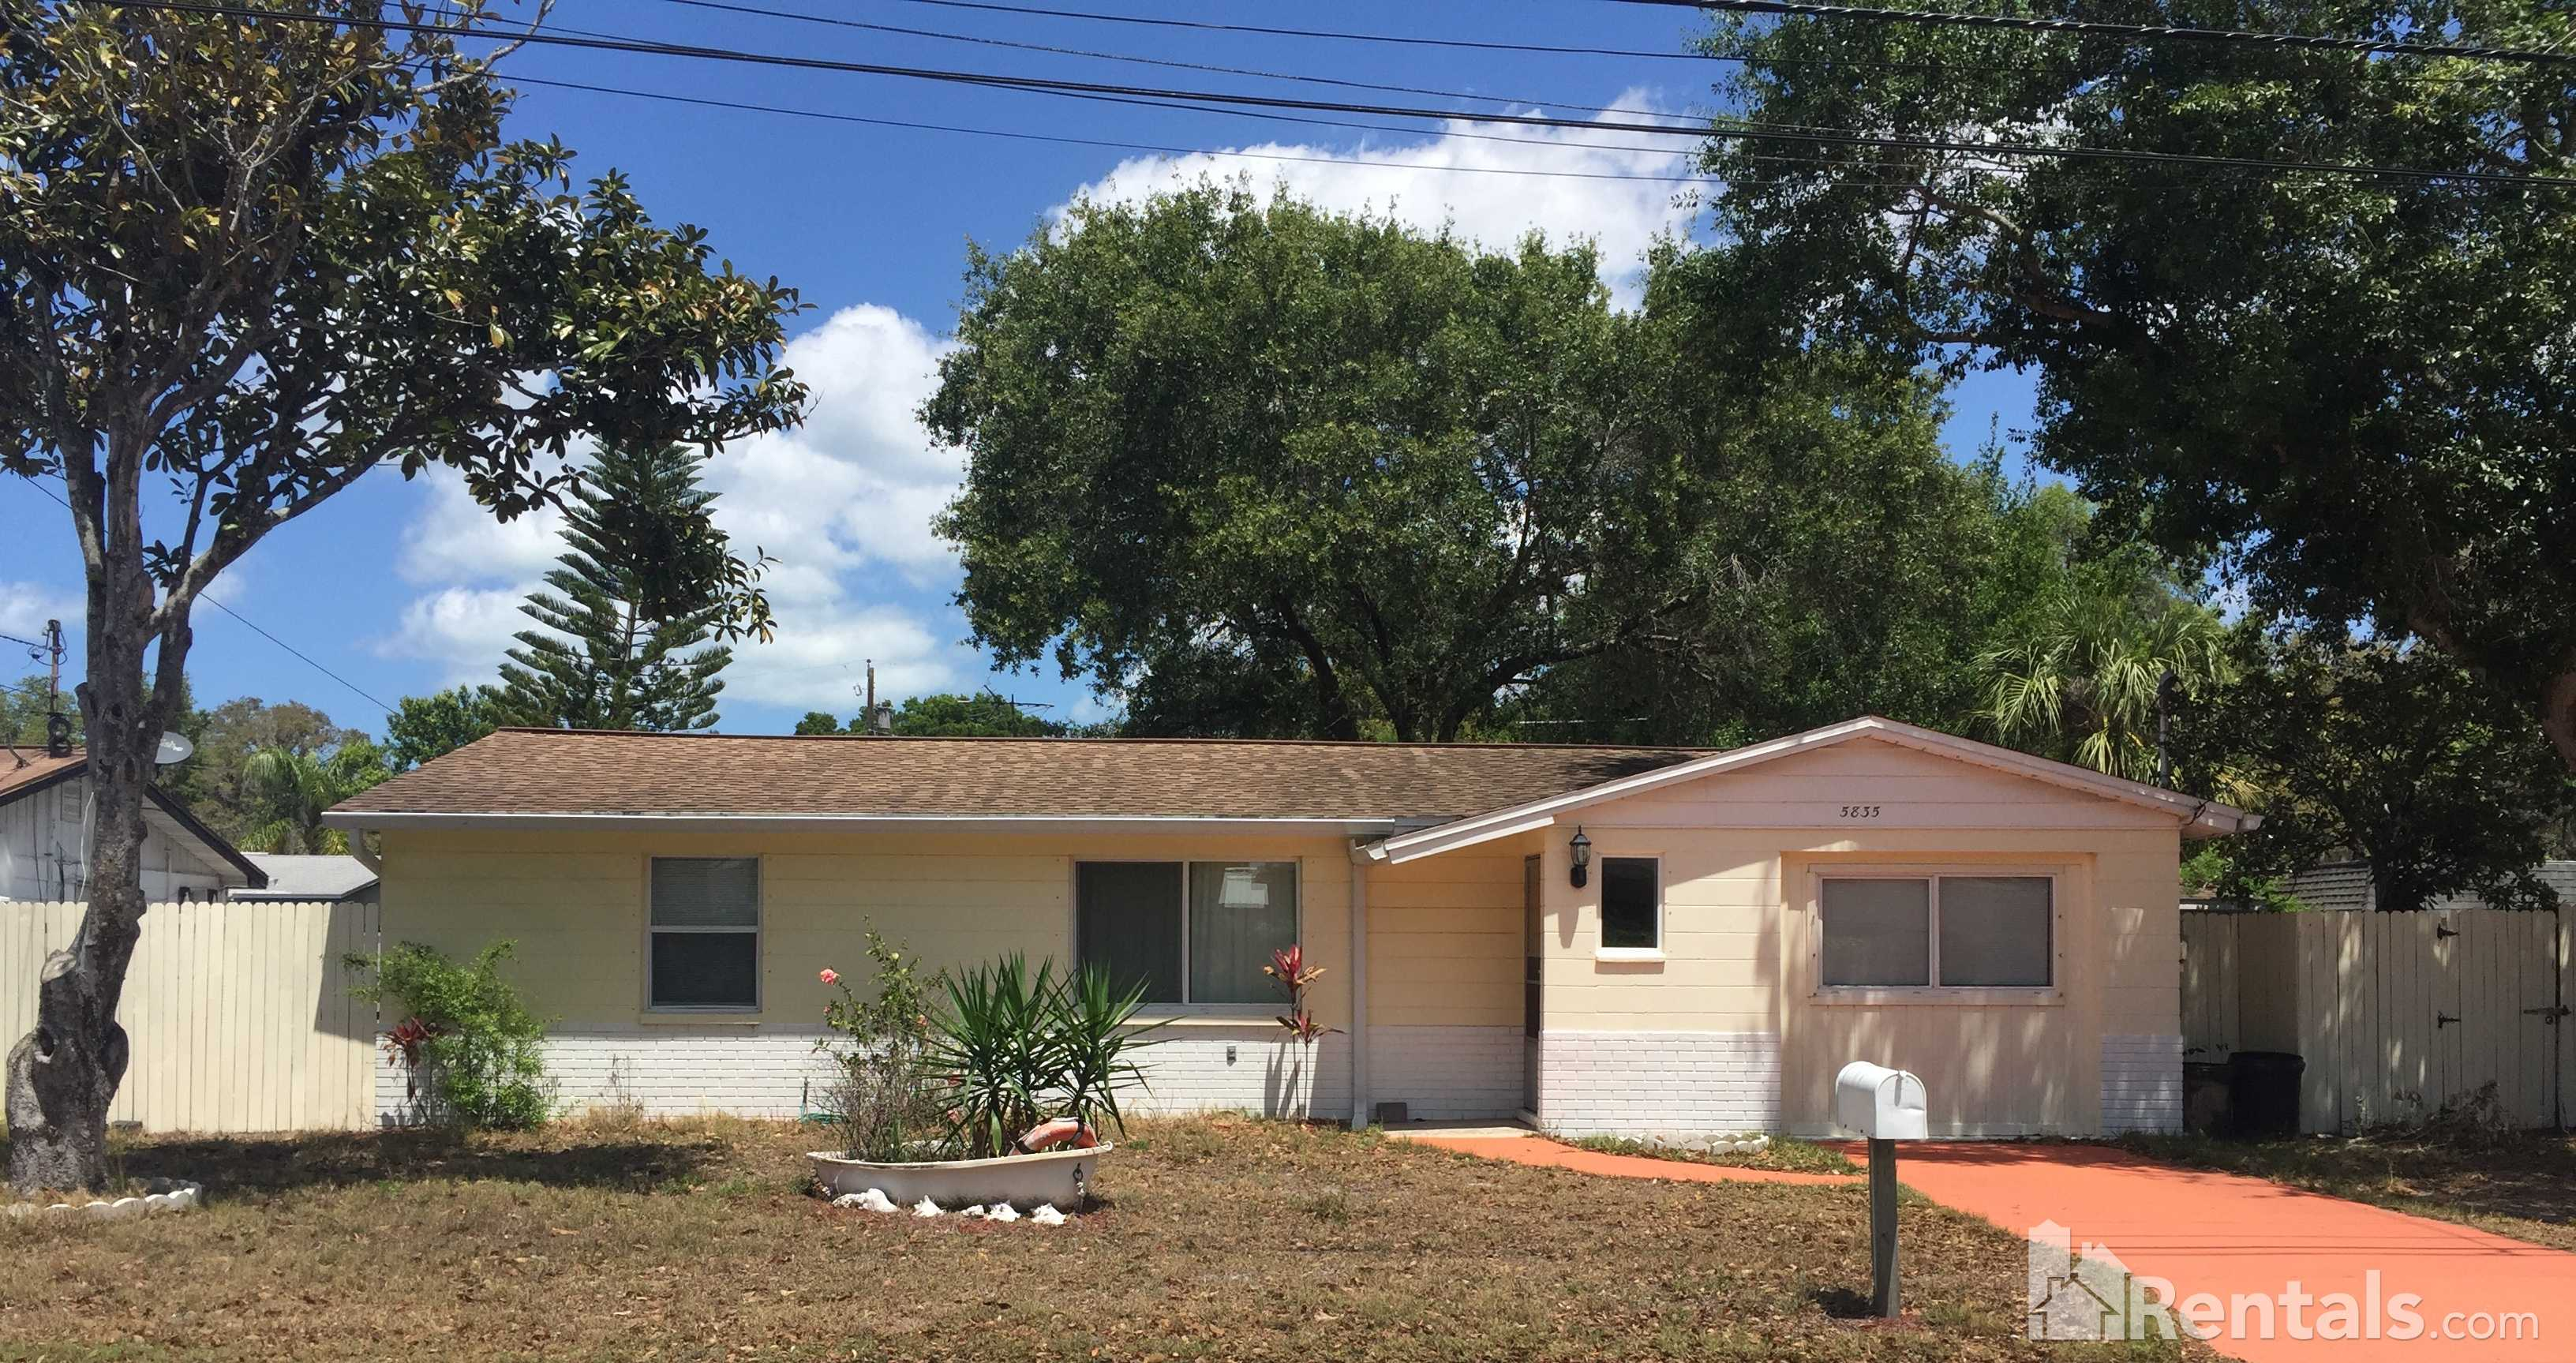 House for Rent in City New Port Richey